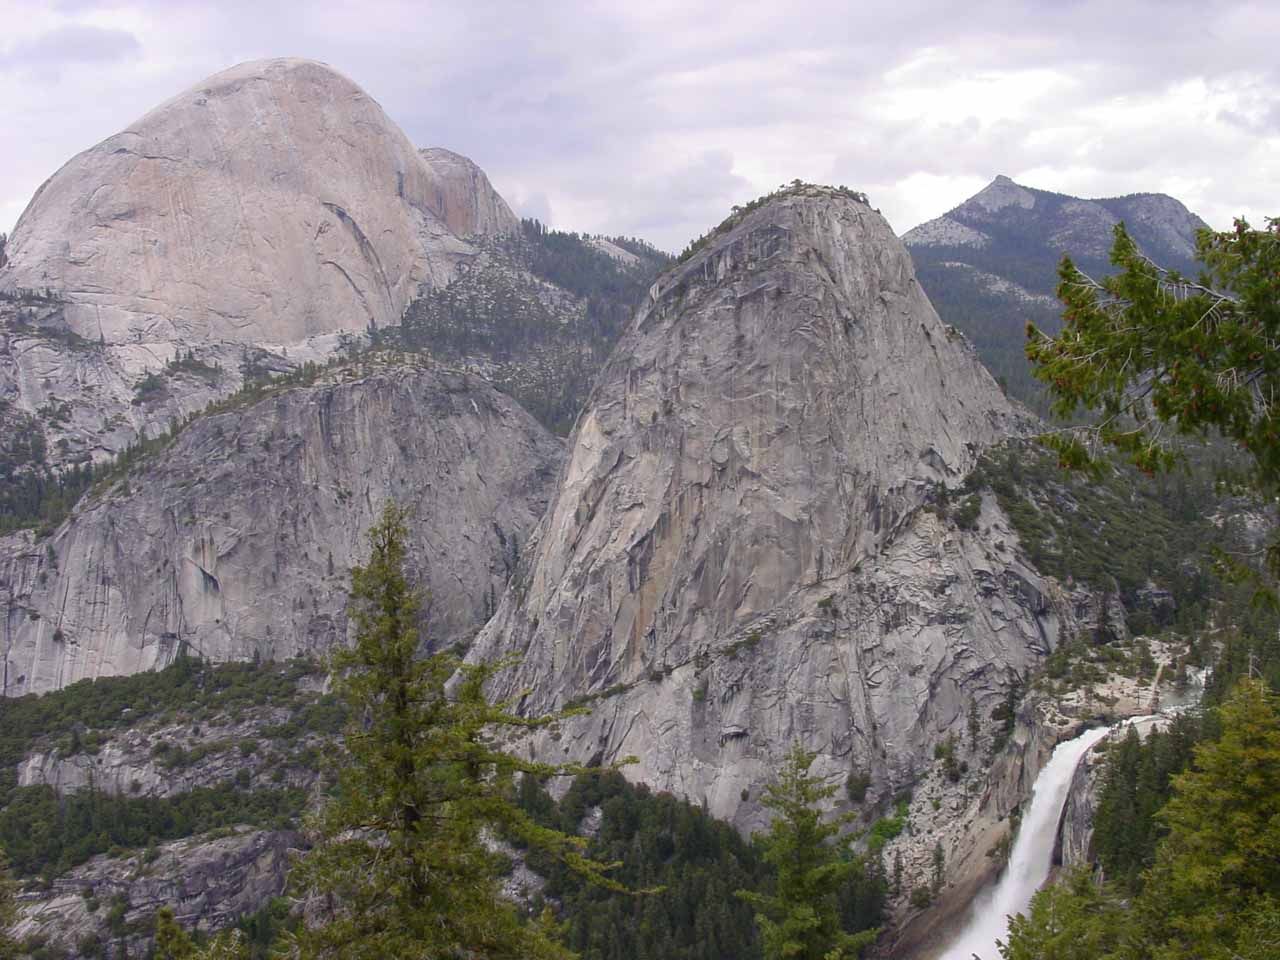 The backside of Half Dome with Nevada Fall and Liberty Cap as seen from the Panorama Trail